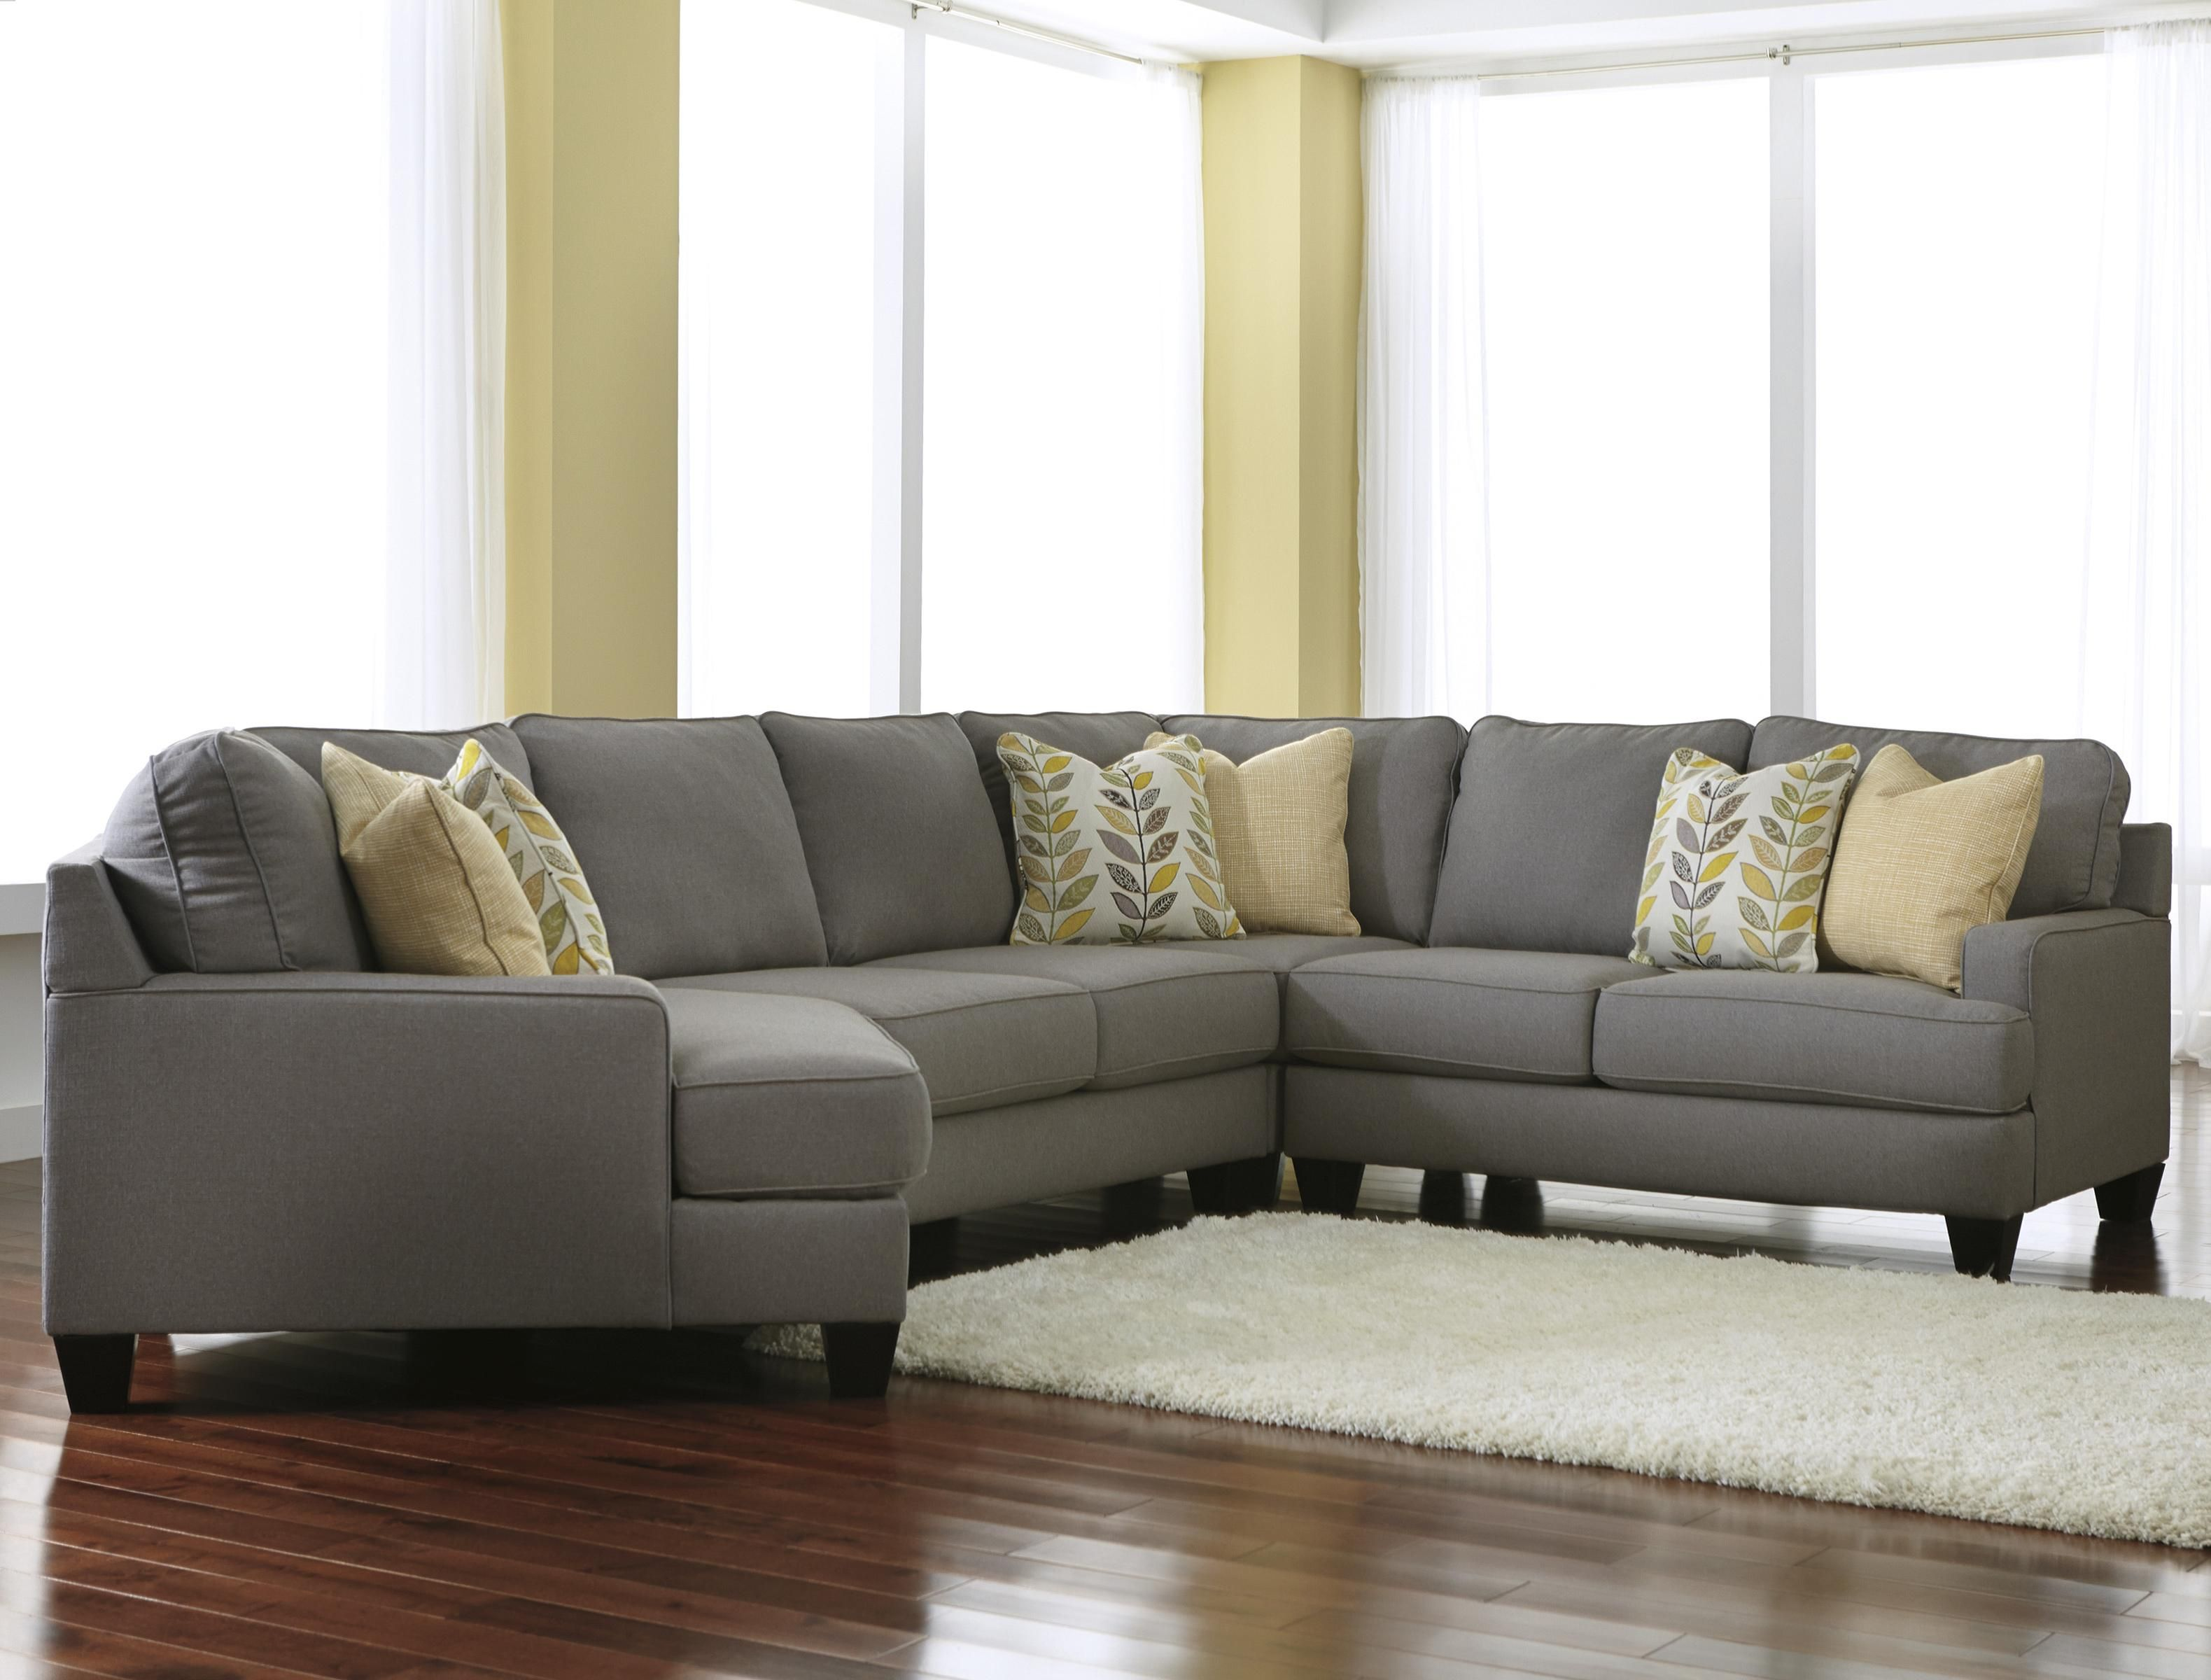 Chamberly Alloy Modern 4 Piece Sectional Sofa with Left Cuddler & Reversible Seat Cushions by Signature Design by Ashley